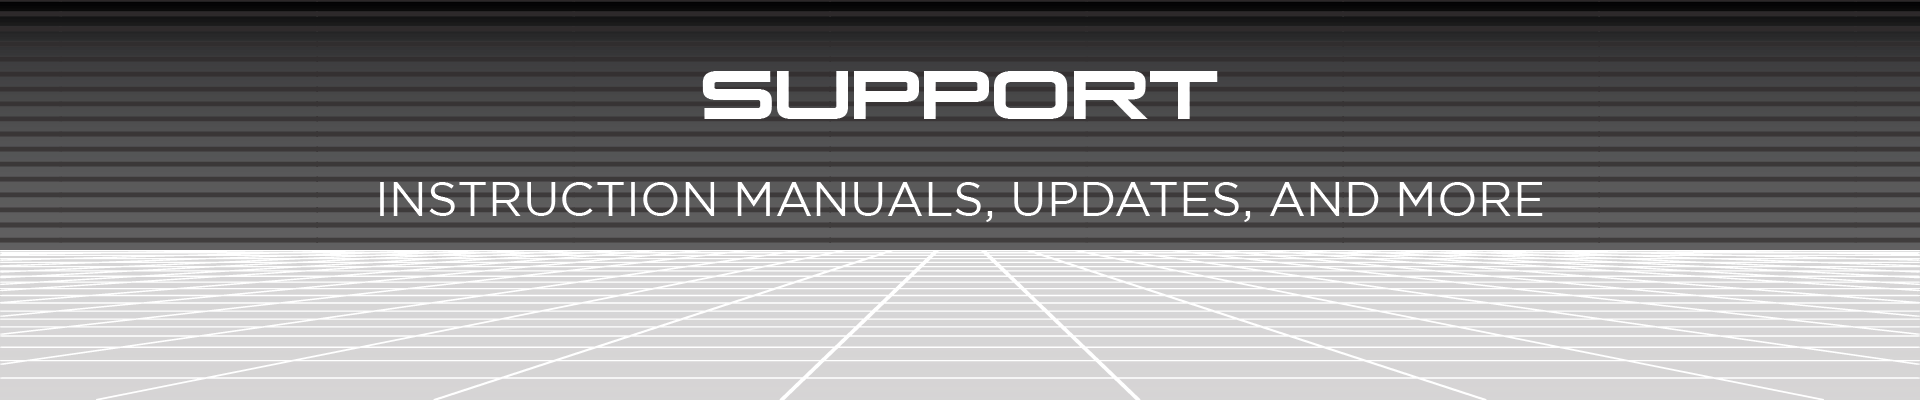 Support, Manuals, Retro-Bit, Update, Firmware, help, guide